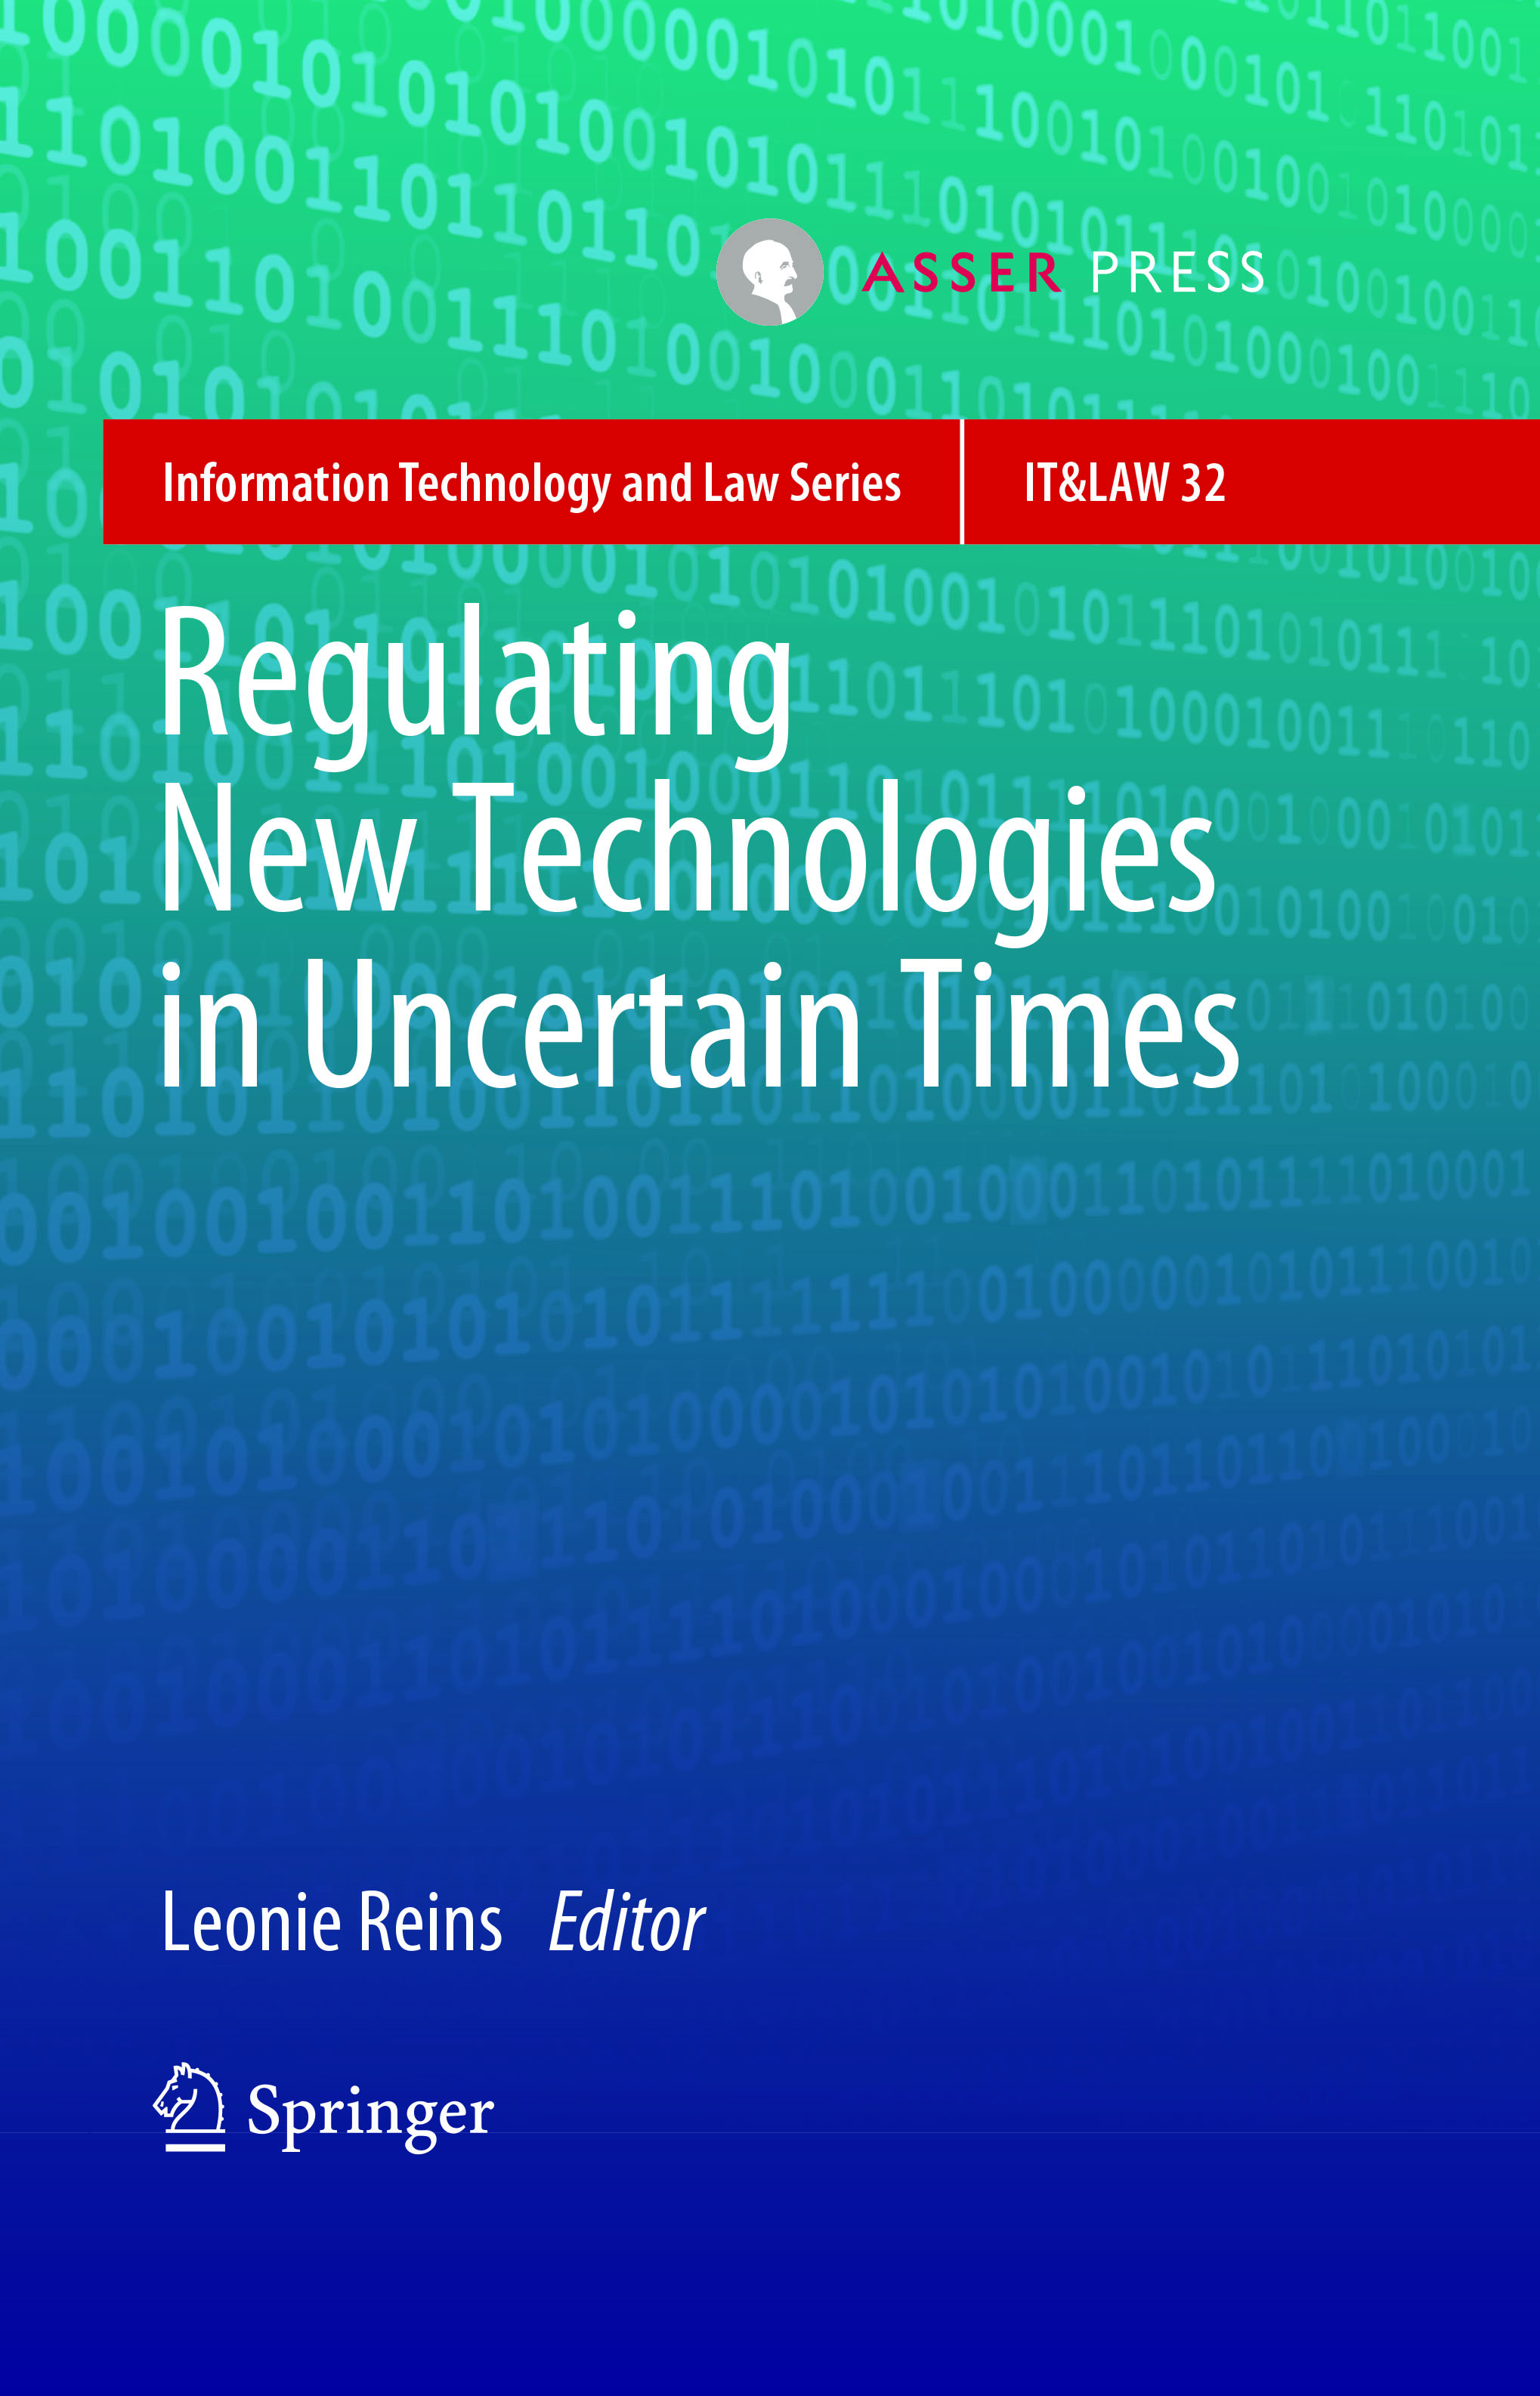 Regulating New Technologies in Uncertain Times